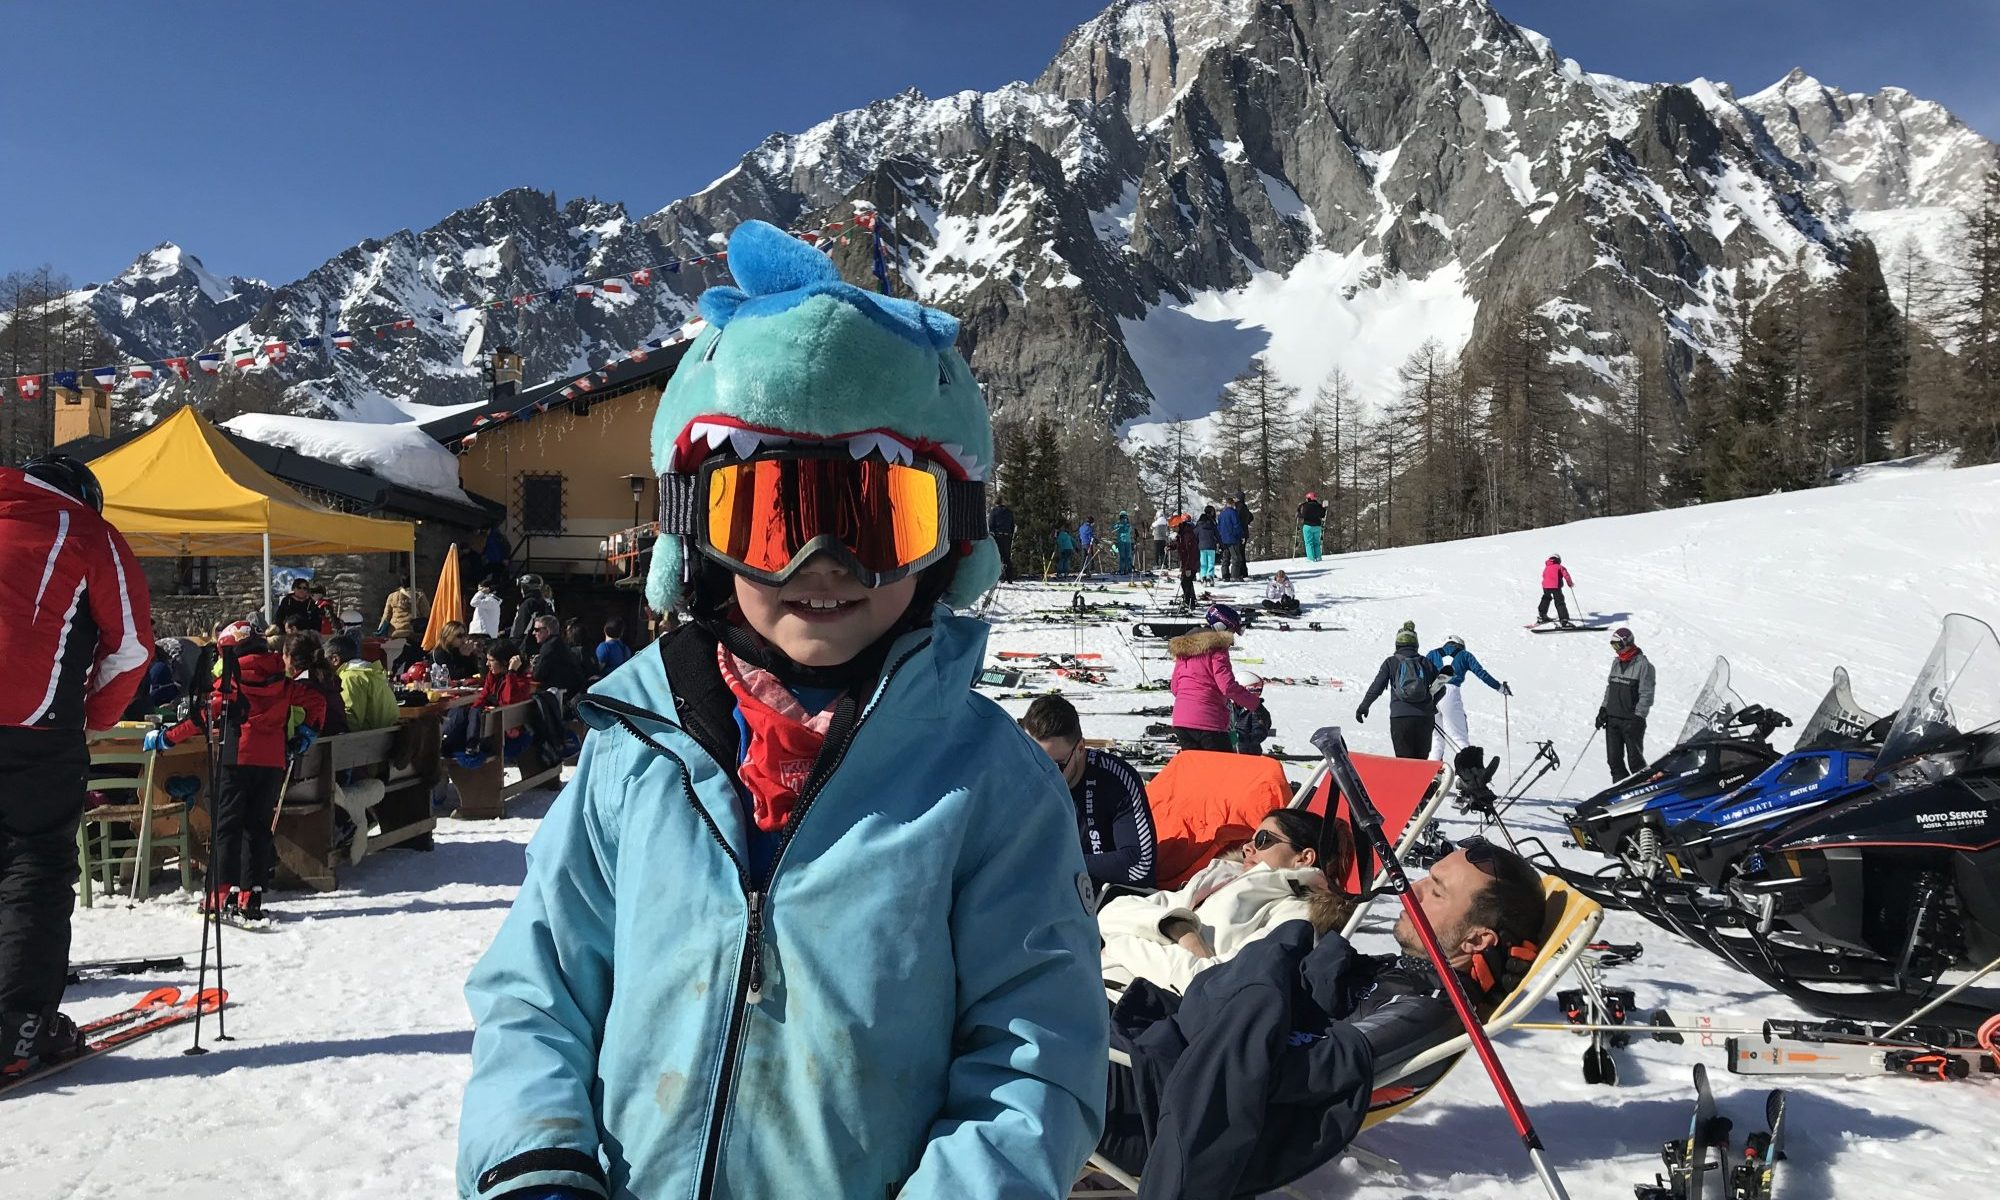 My youngest son at Maison Vielle- with the majestic Mont Blanc behind. Photo: The-Ski-Guru. The Half Term Family Ski Holiday that did not result as planned.